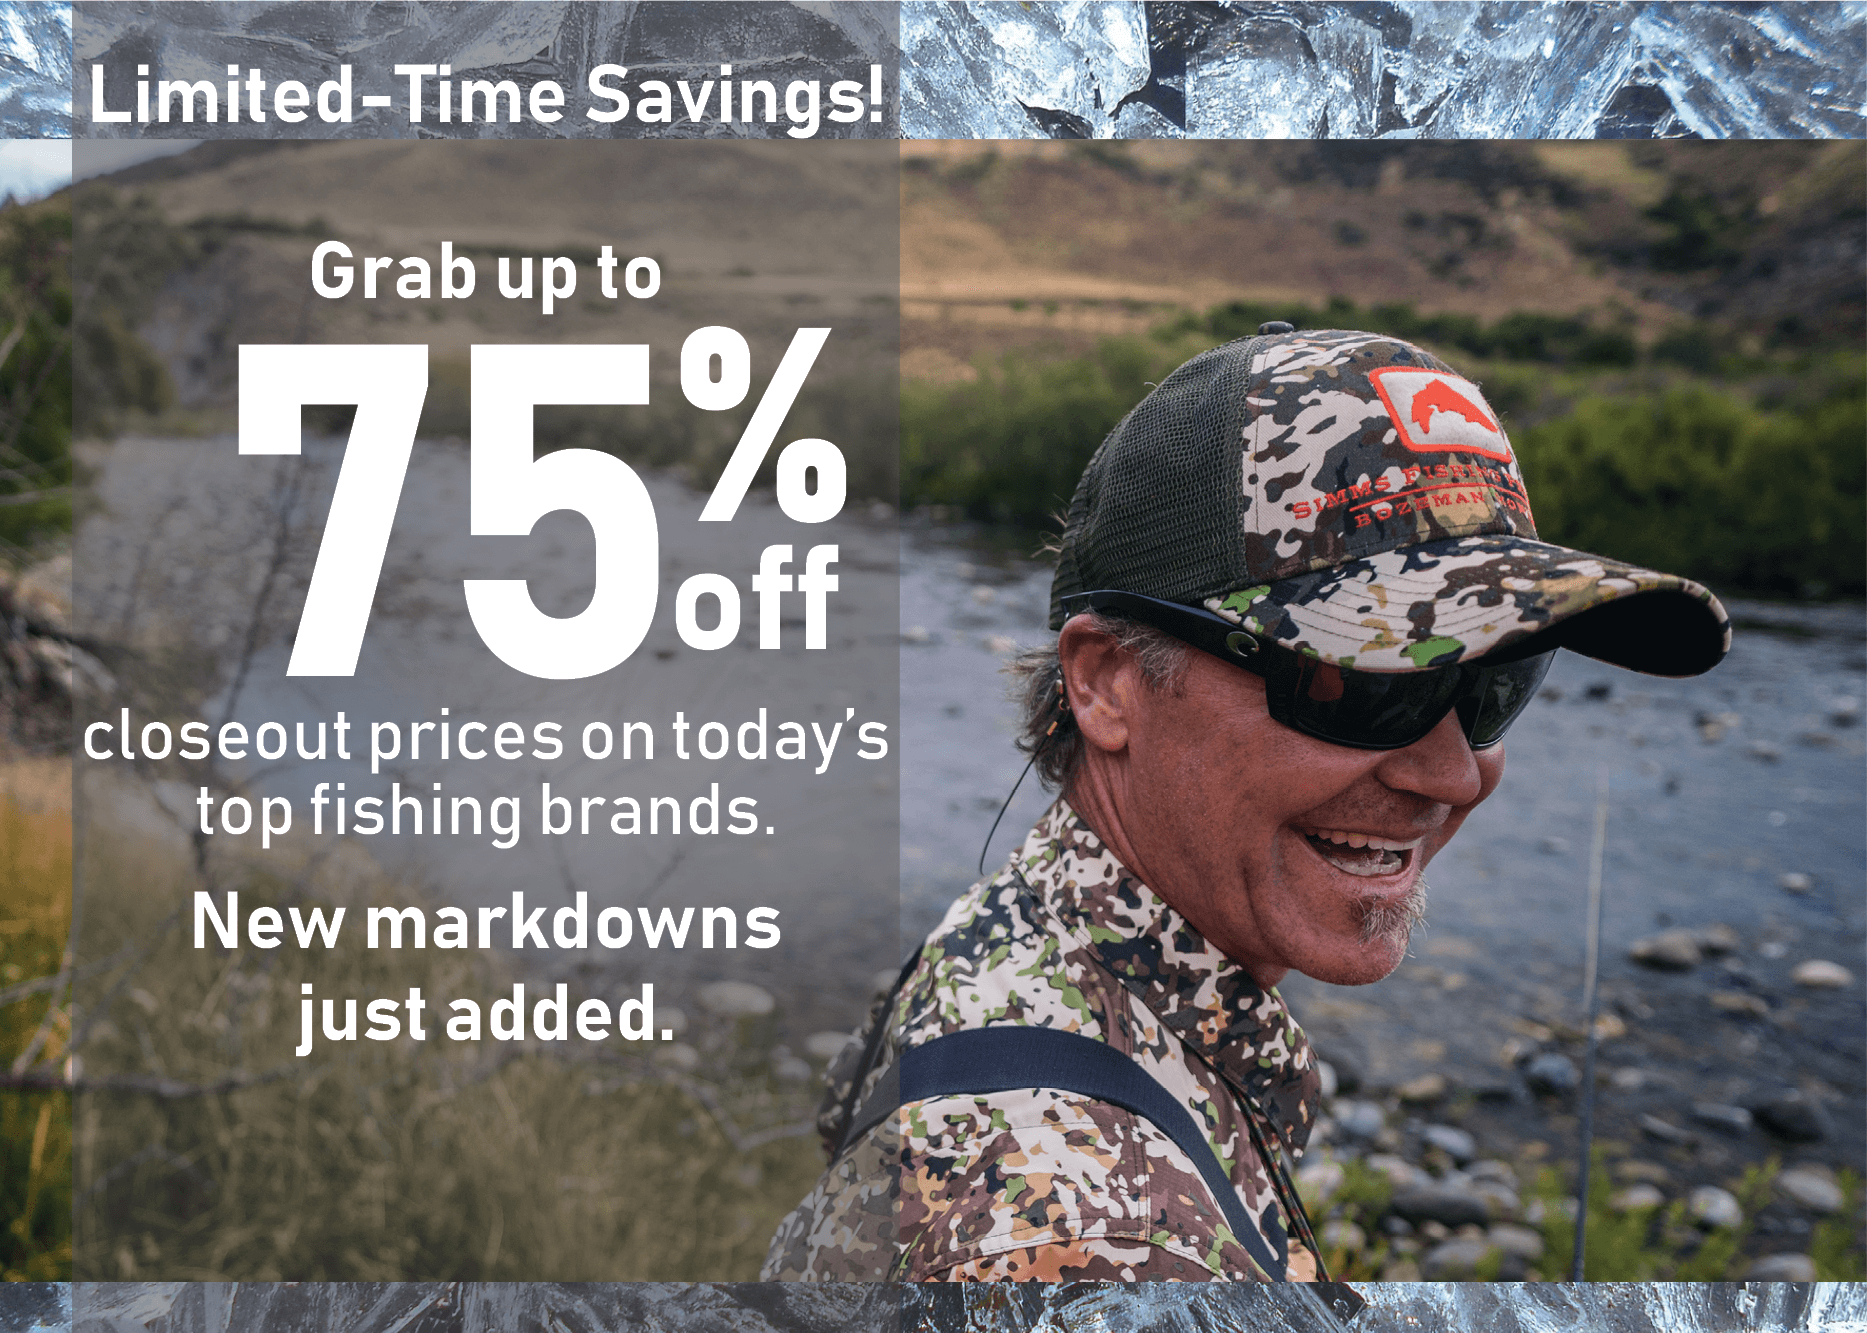 Grab FishUSA's Clearance deals while they last!